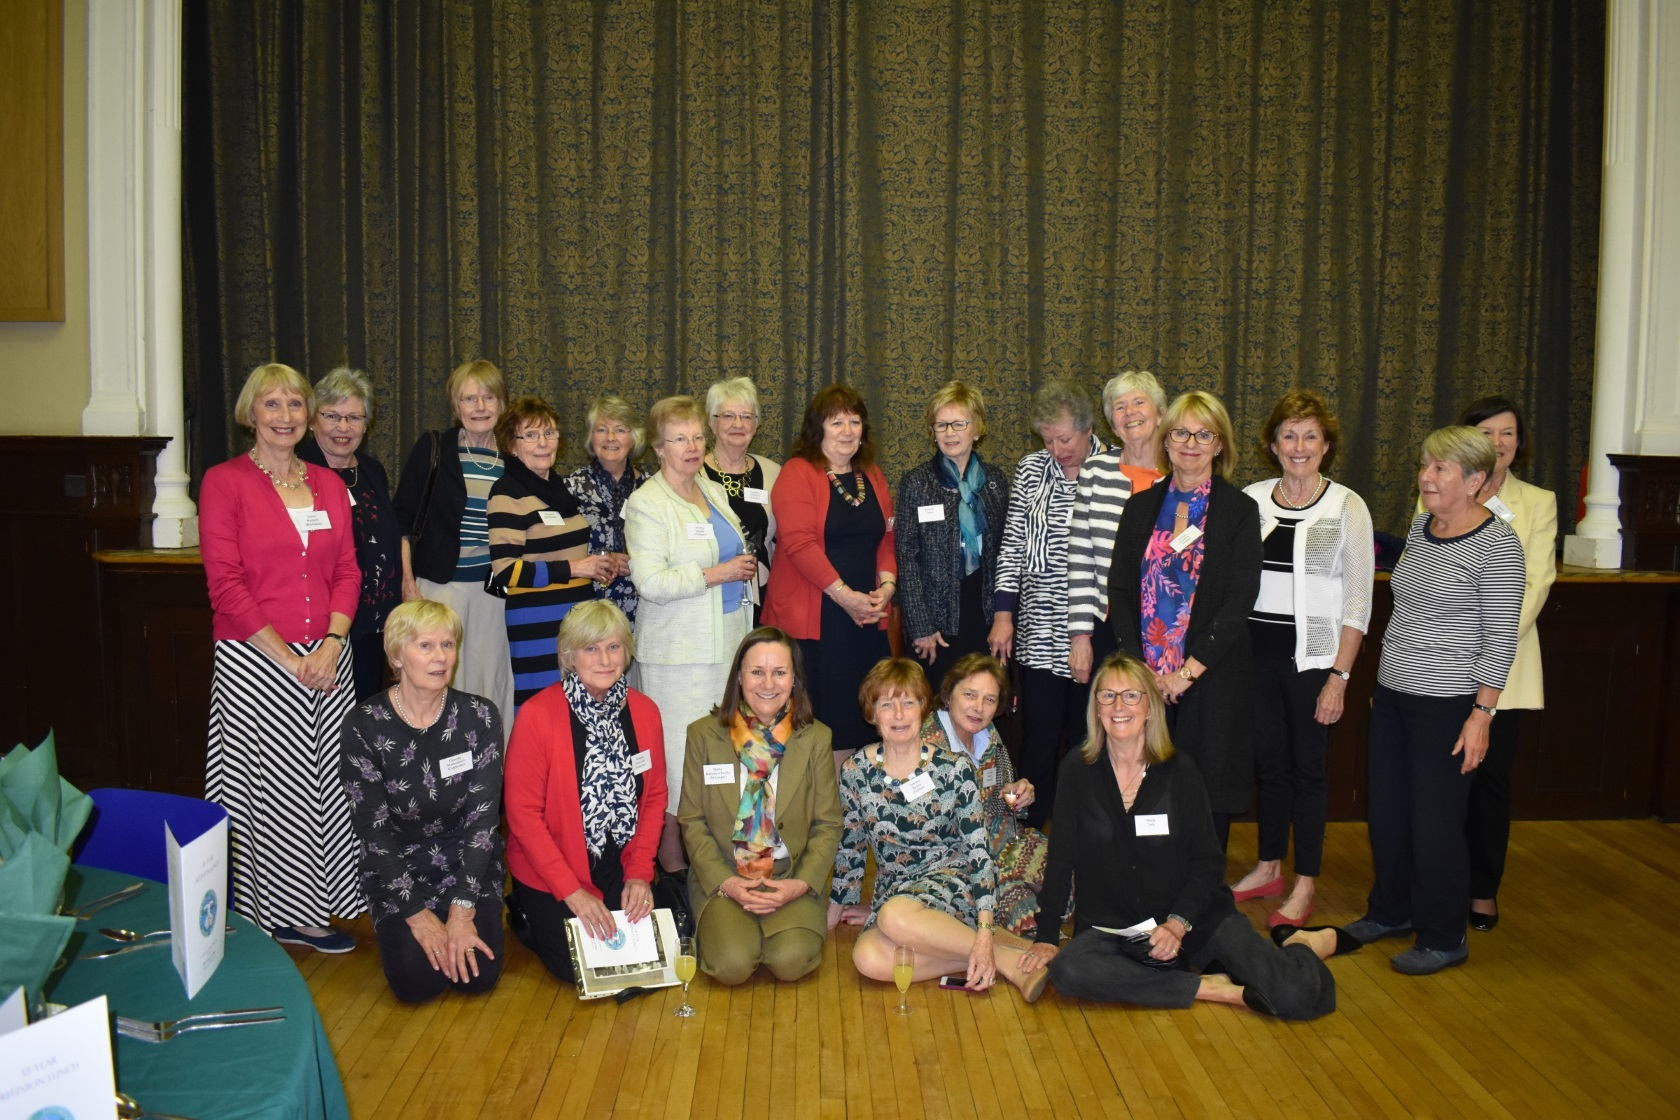 St Columba's Spring Reunion Day